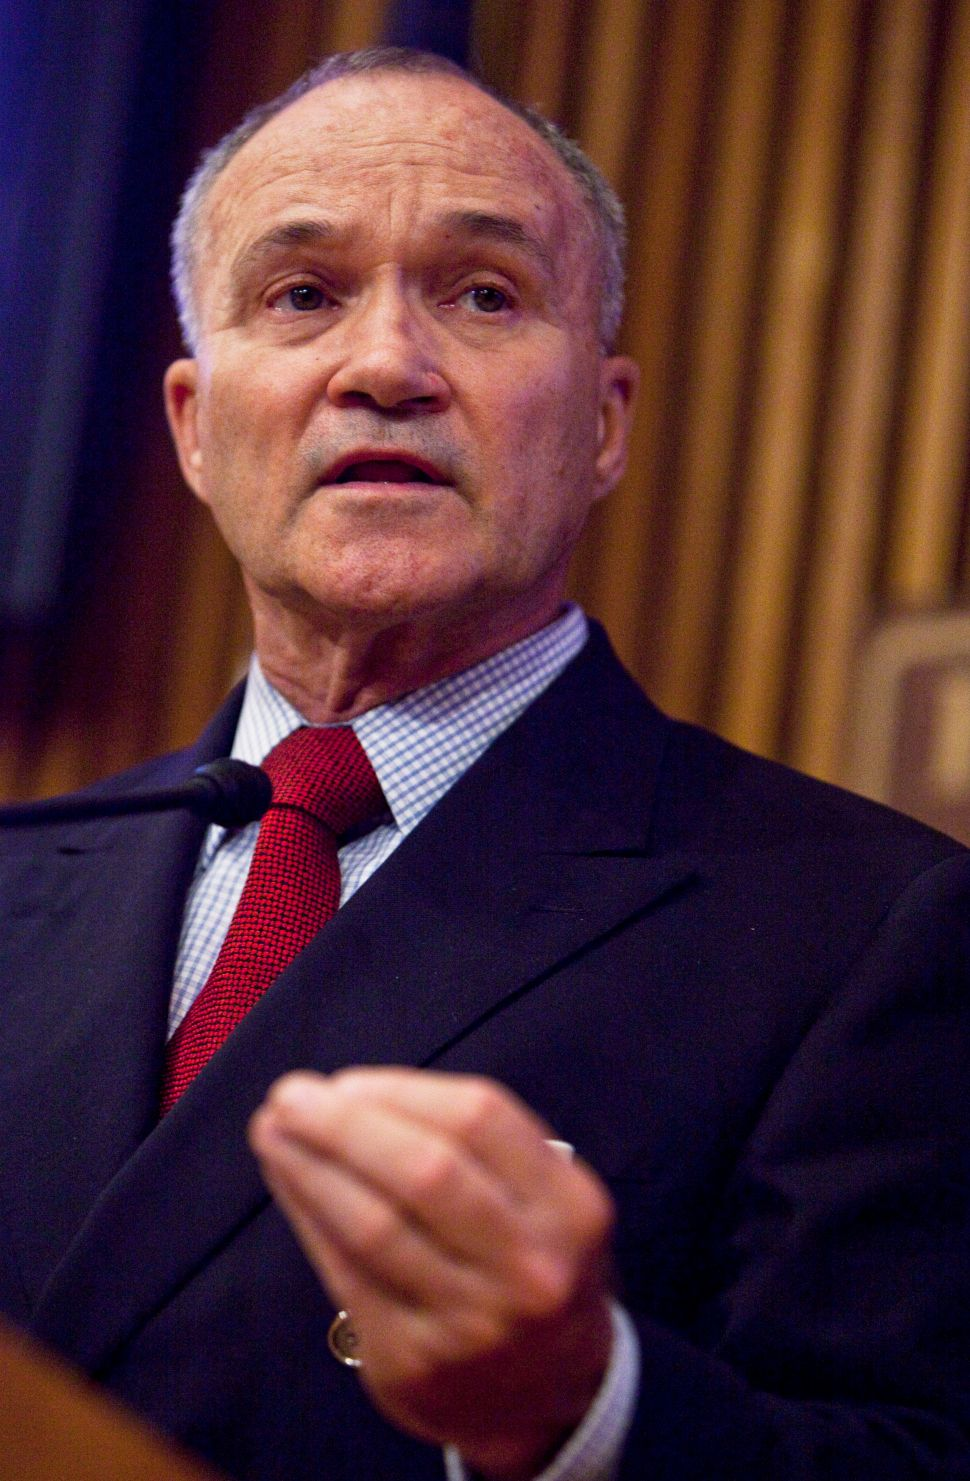 Ray Kelly Lands Gig at Council on Foreign Relations